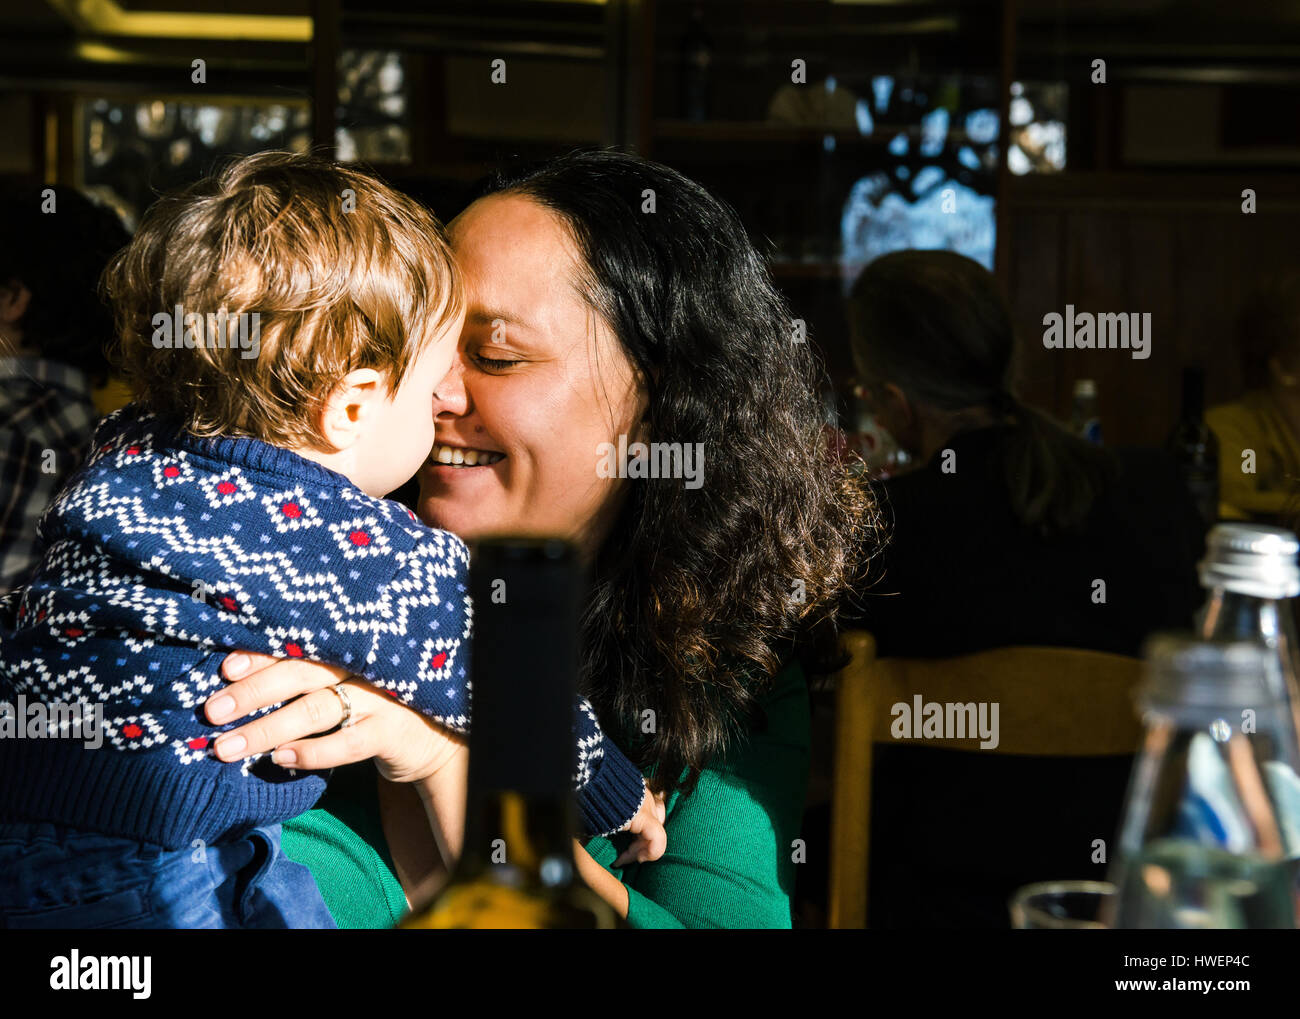 Mature woman face to face with baby son in cafe - Stock Image